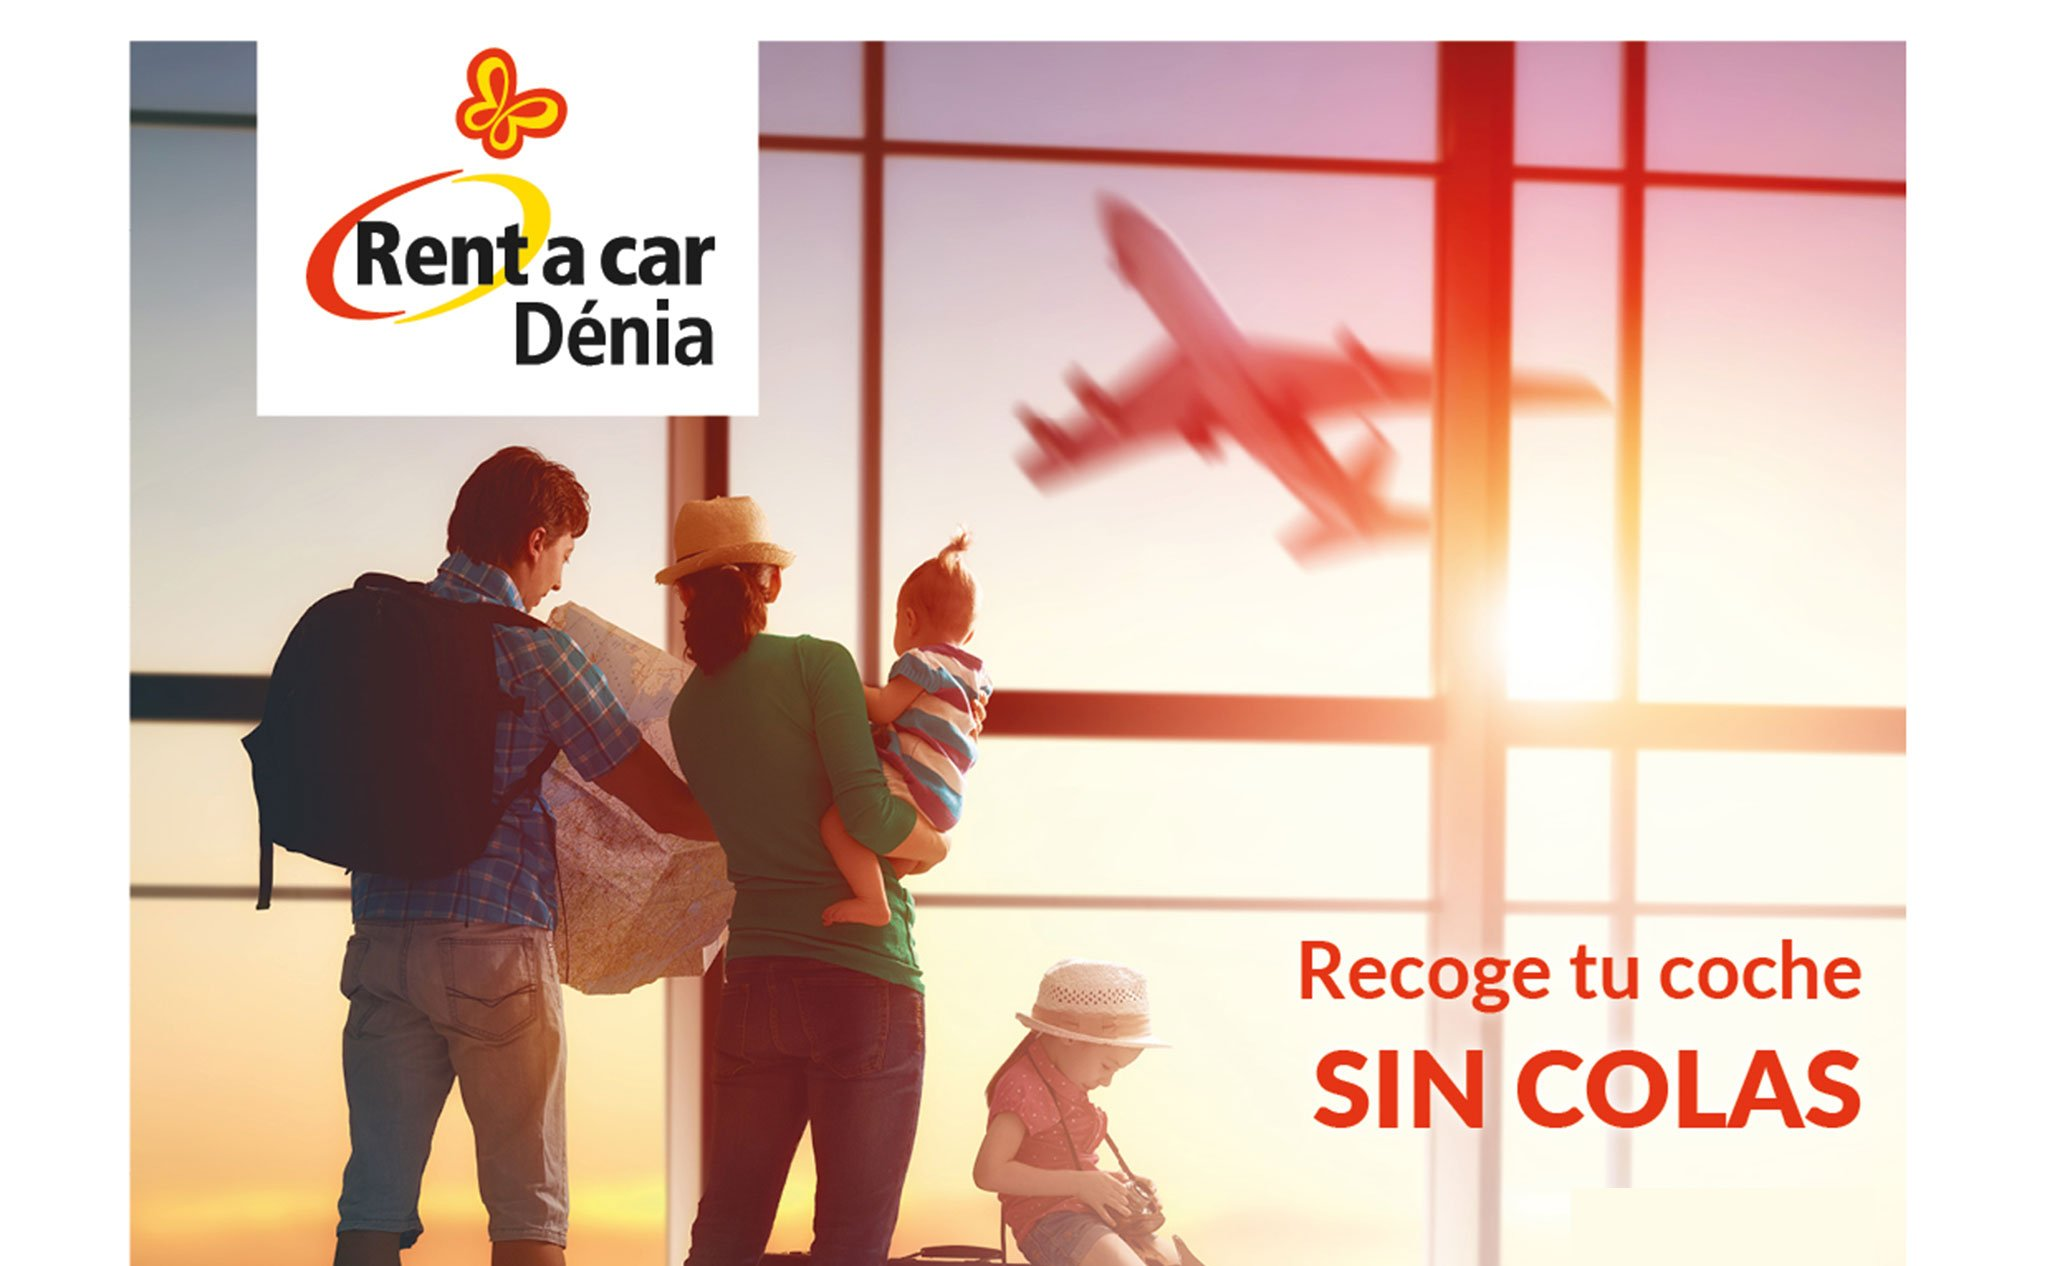 Trust Rent a Car Dénia to rent your vehicle